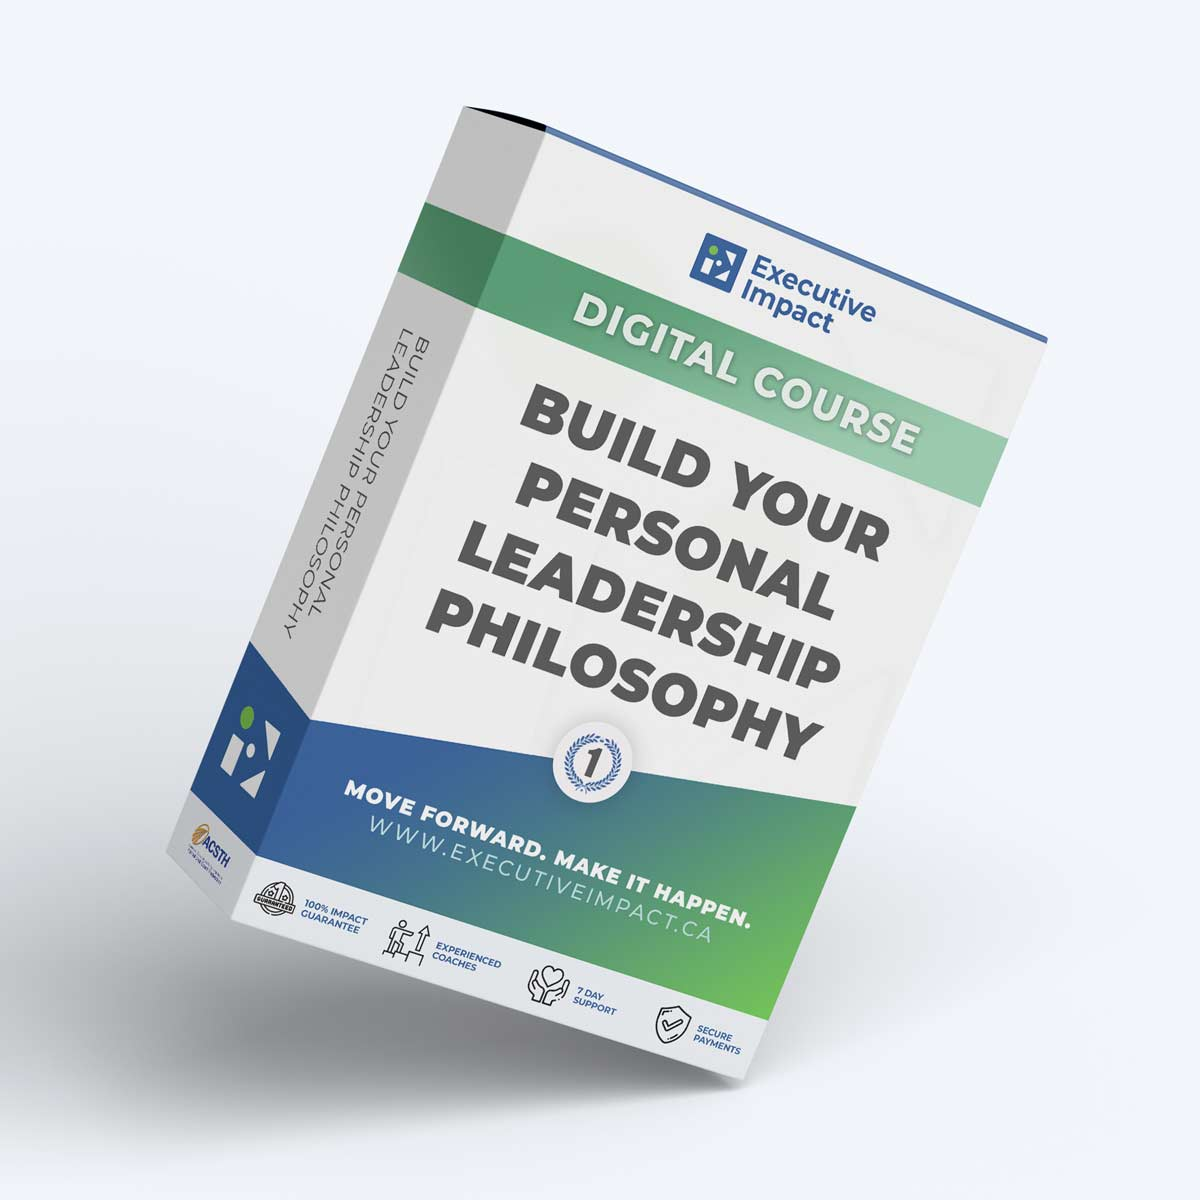 Build your Personal Leadership Philosophy